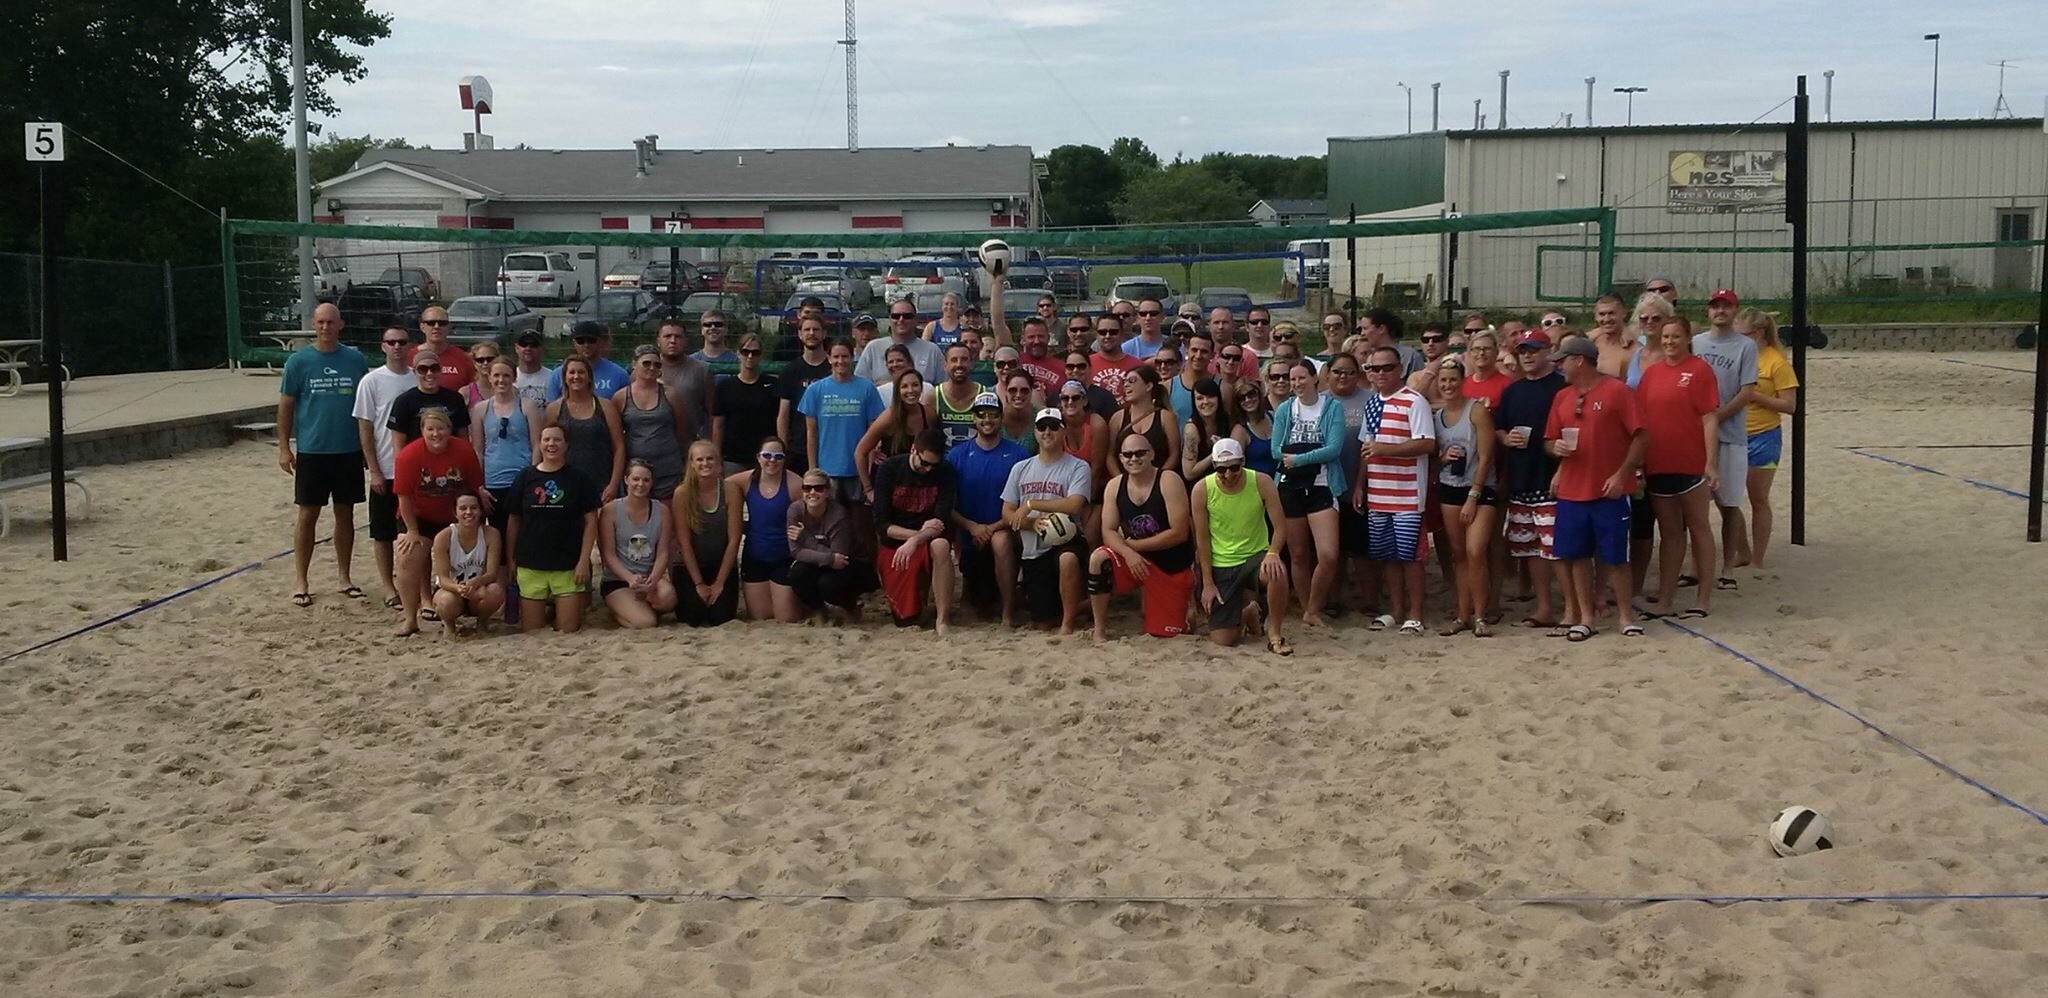 Dog Days of Summer Sand Volleyball Tournament